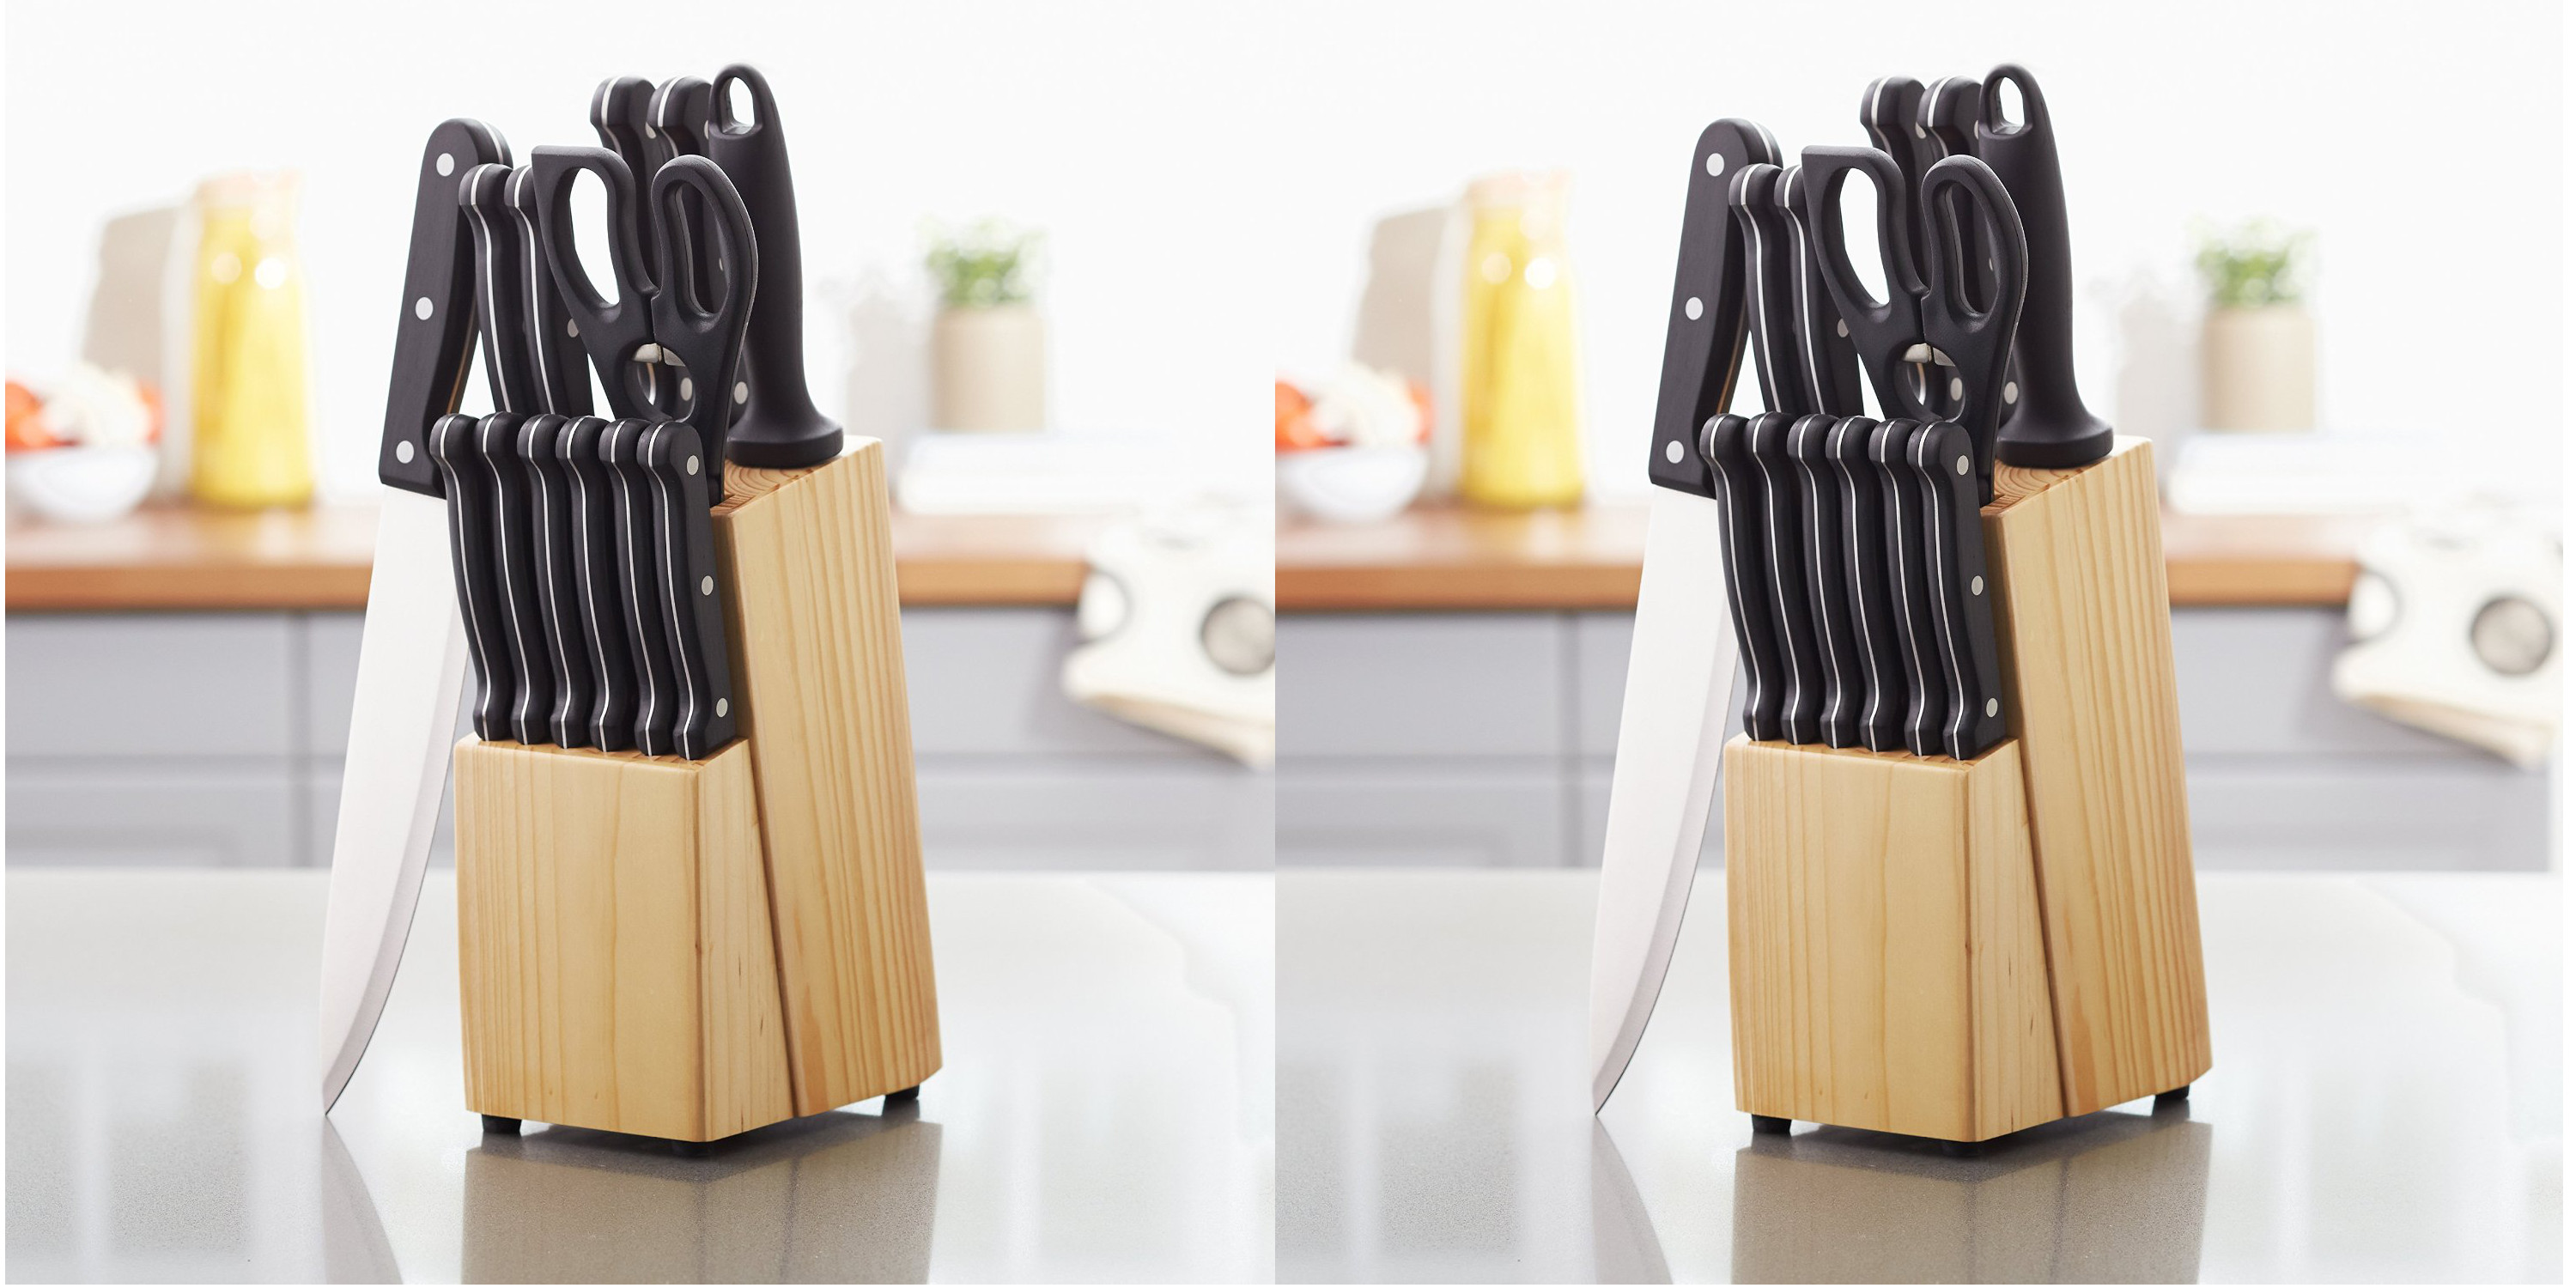 amazonbasics-knife-block-sale-01